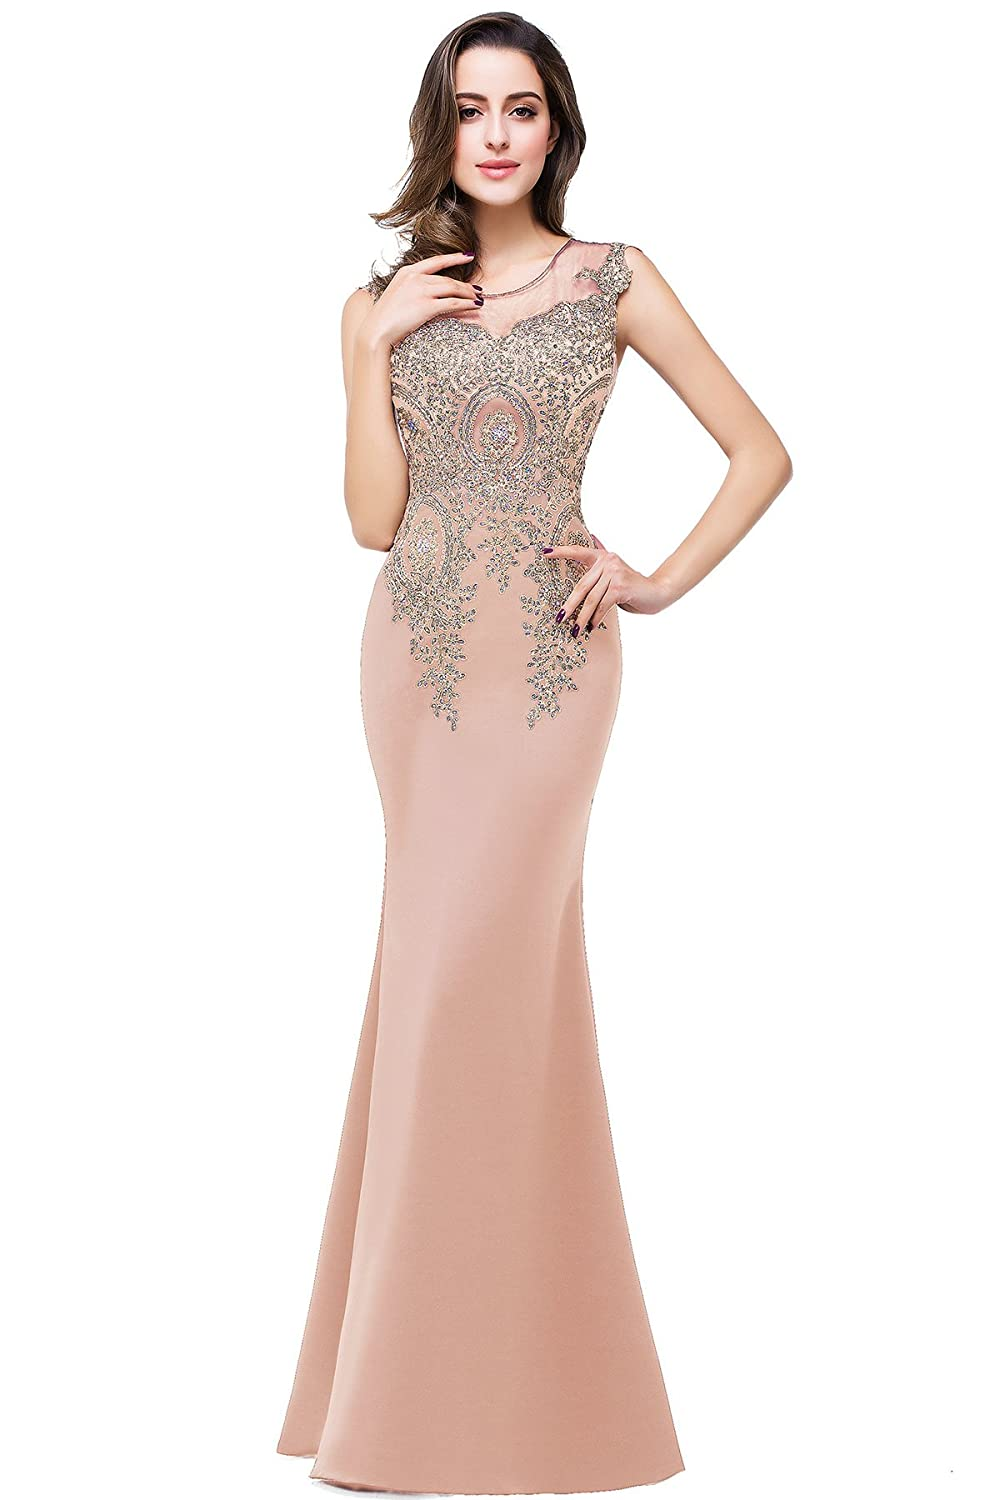 c51c5ebf40 Top 10 wholesale Green And Gold Prom Dress - Chinabrands.com